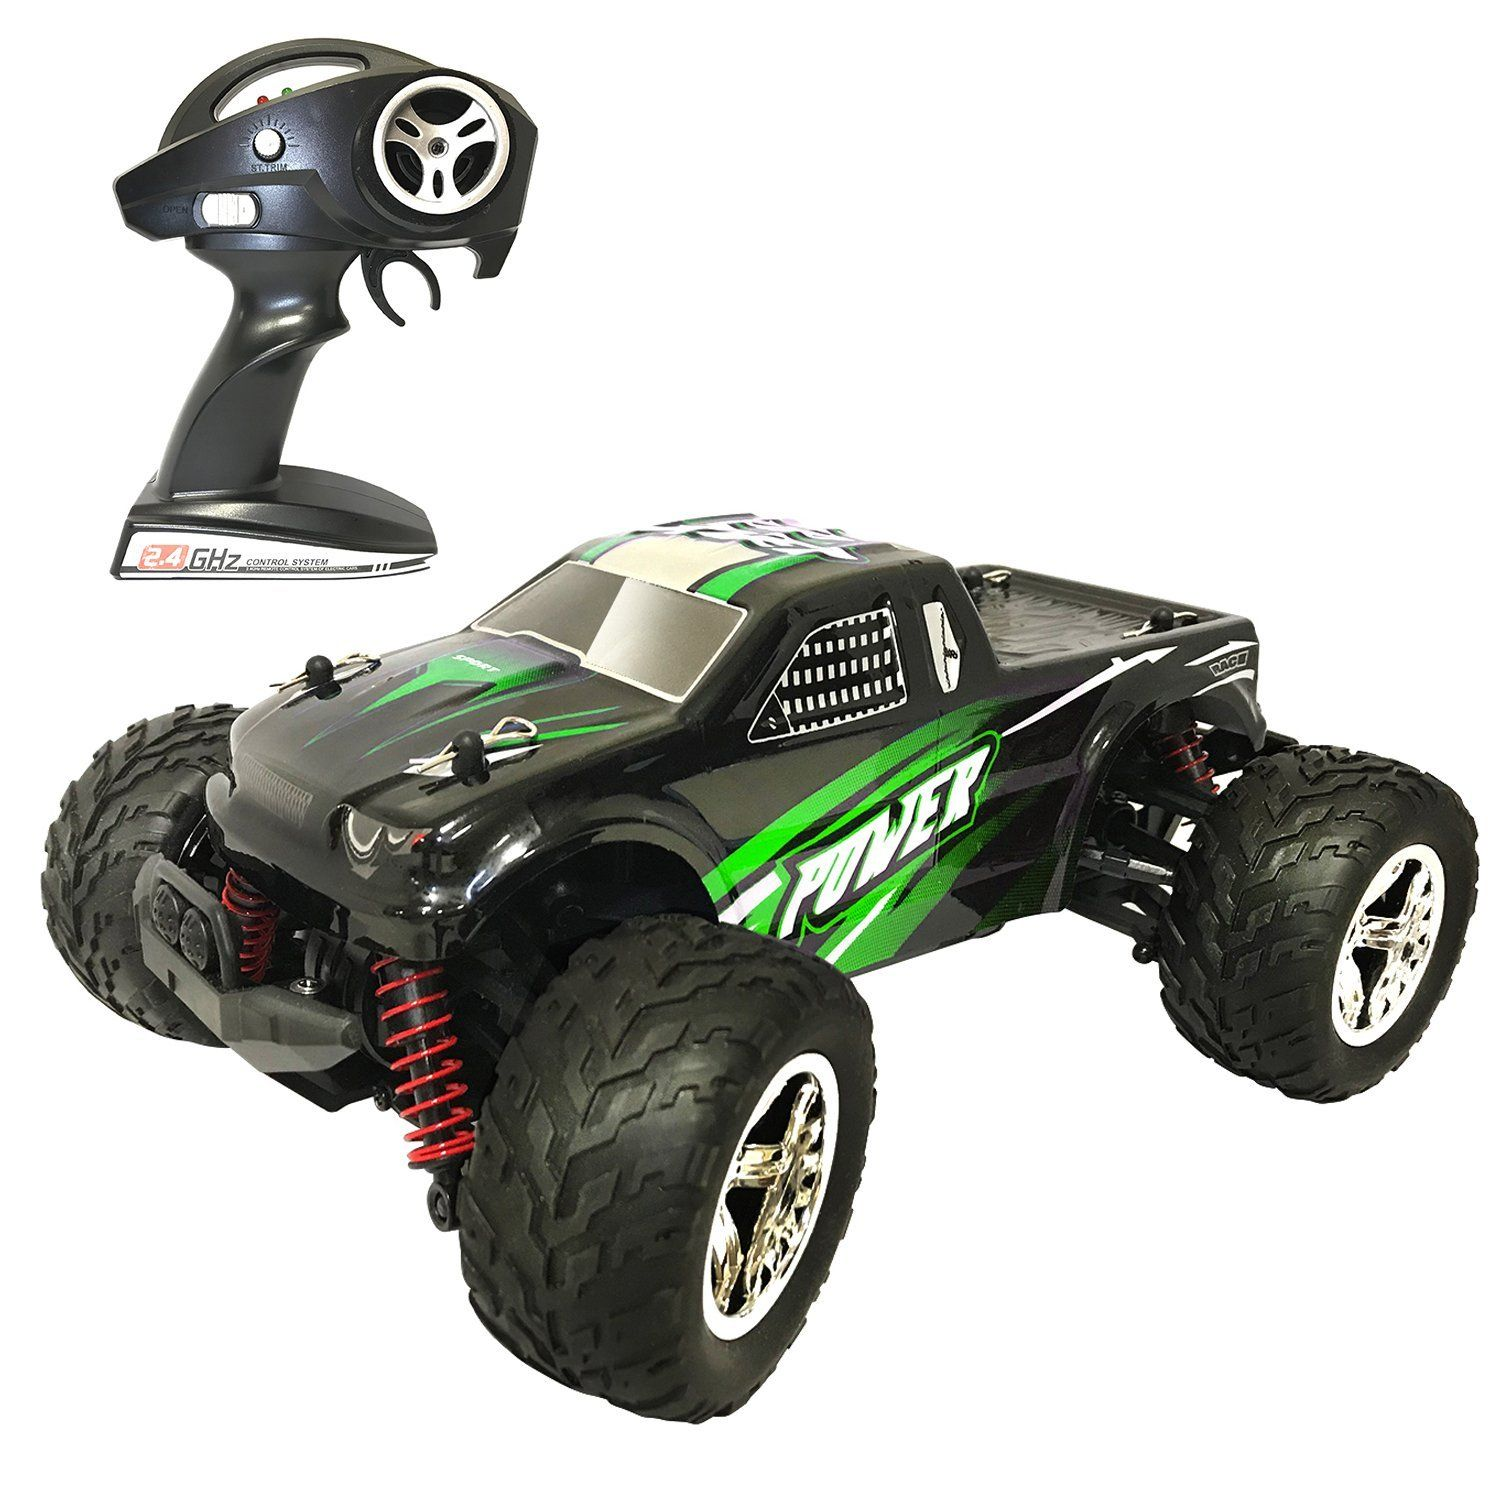 HomeXin RC Car 120 4WD High Speed Off Road